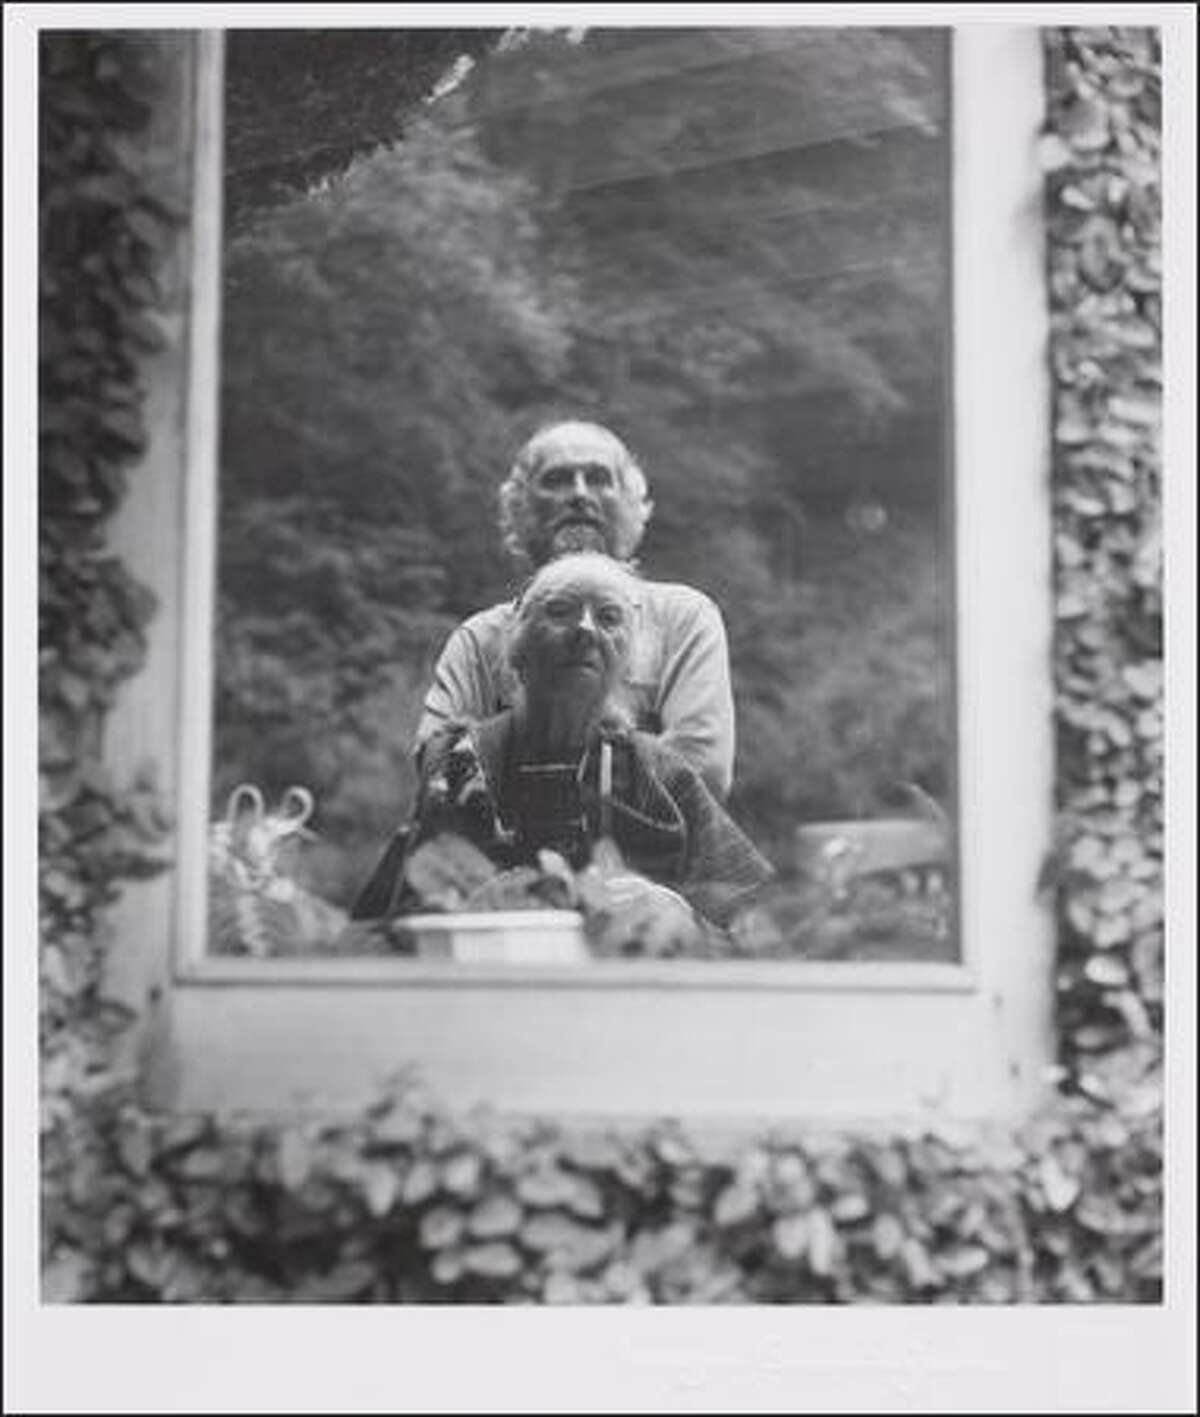 """""""Morris Graves and Imogen in his Garden"""", photograph, medium gelatin silver print Dimensions 8 3/8 x 7 3/8 in, 1973. By Imogen Cunningham. (From Marshall and Helen Hatch)"""